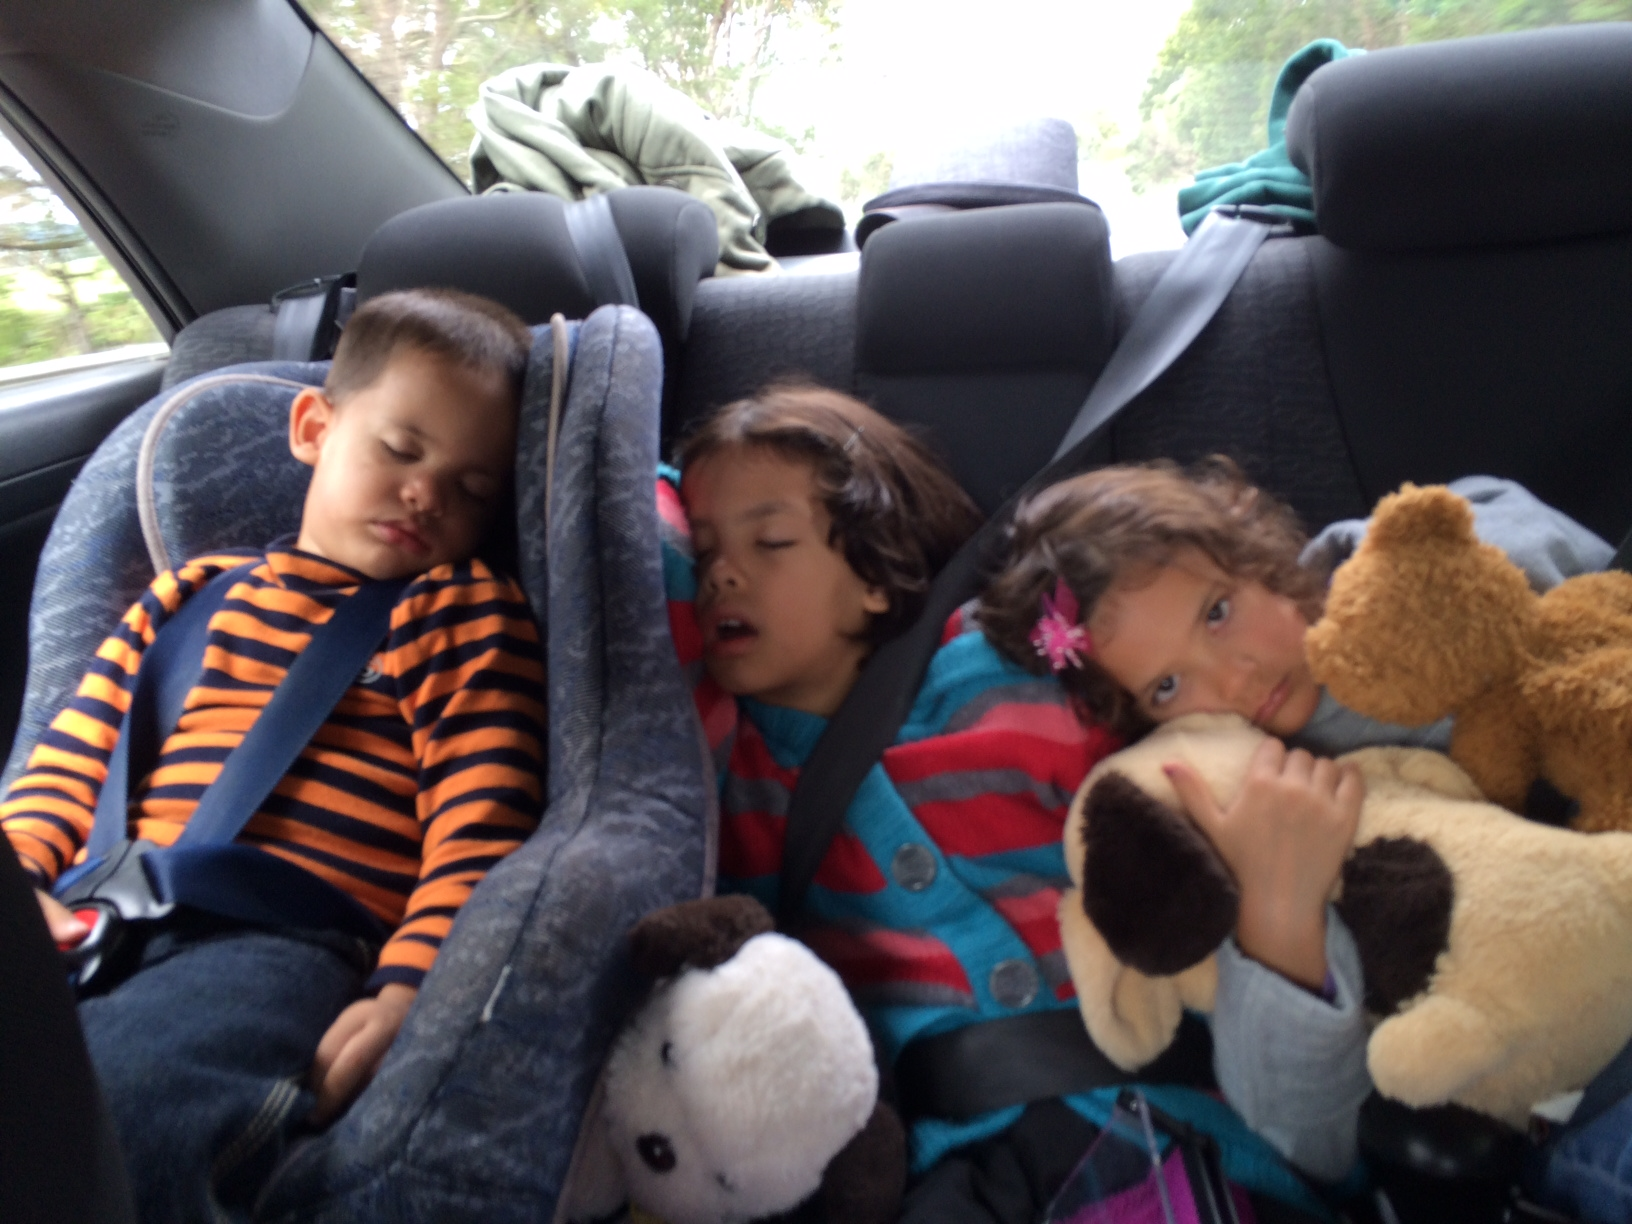 Kids sleeping in car